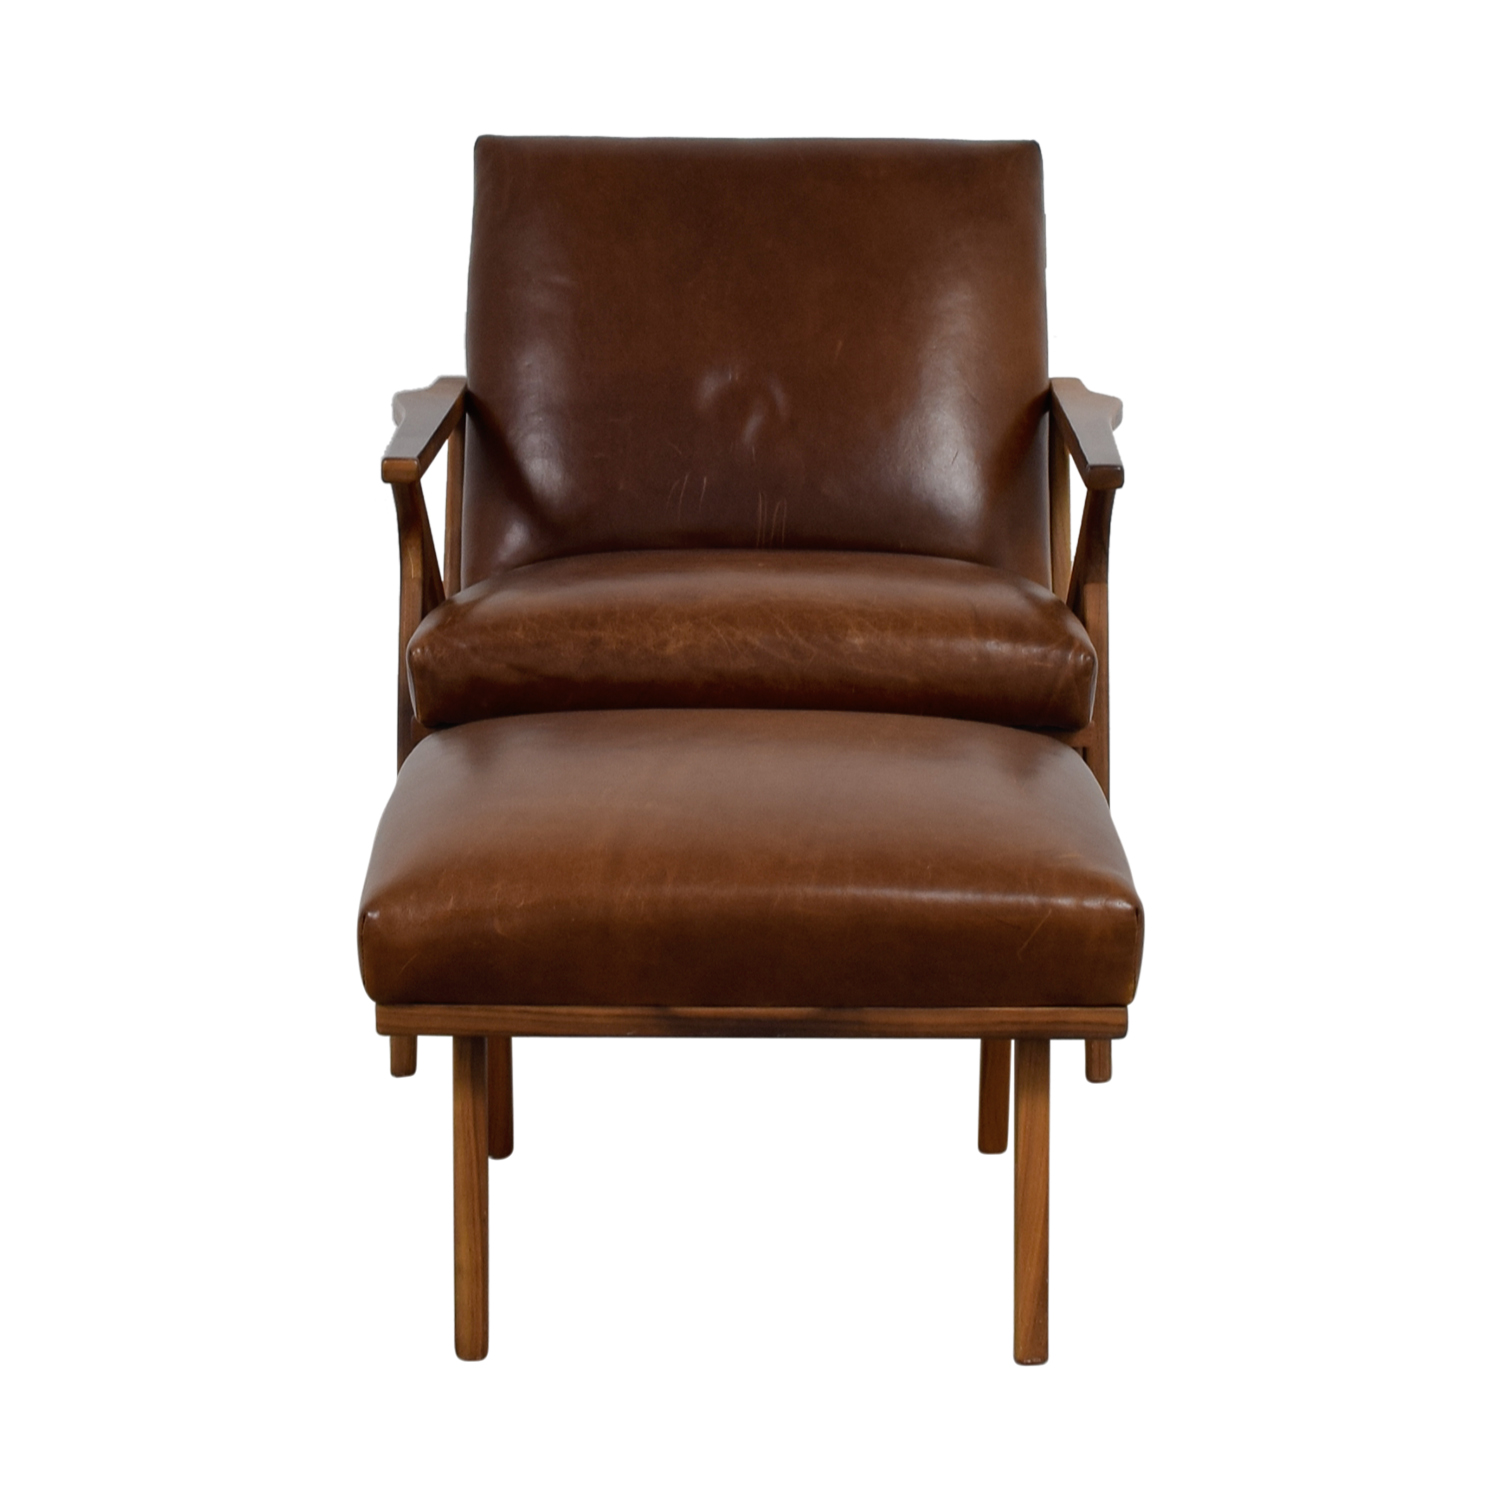 Crate & Barrel Crate & Barrel Brown Leather Chair and Ottoman